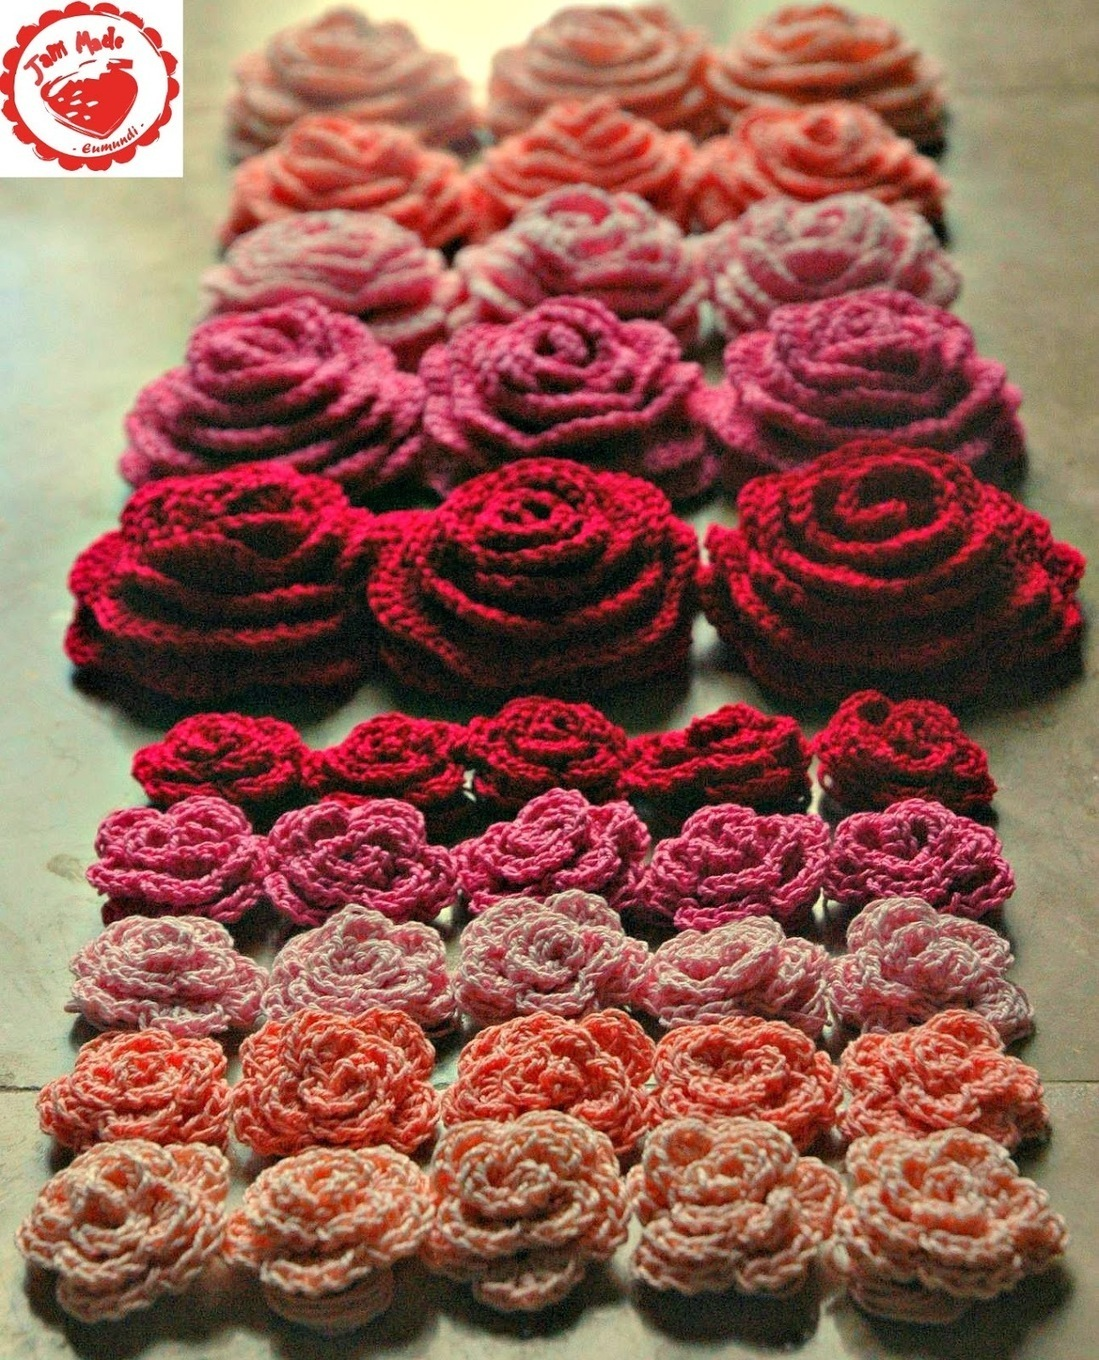 Elf Knitting Hearts : Roses and hearts just crochet scoop